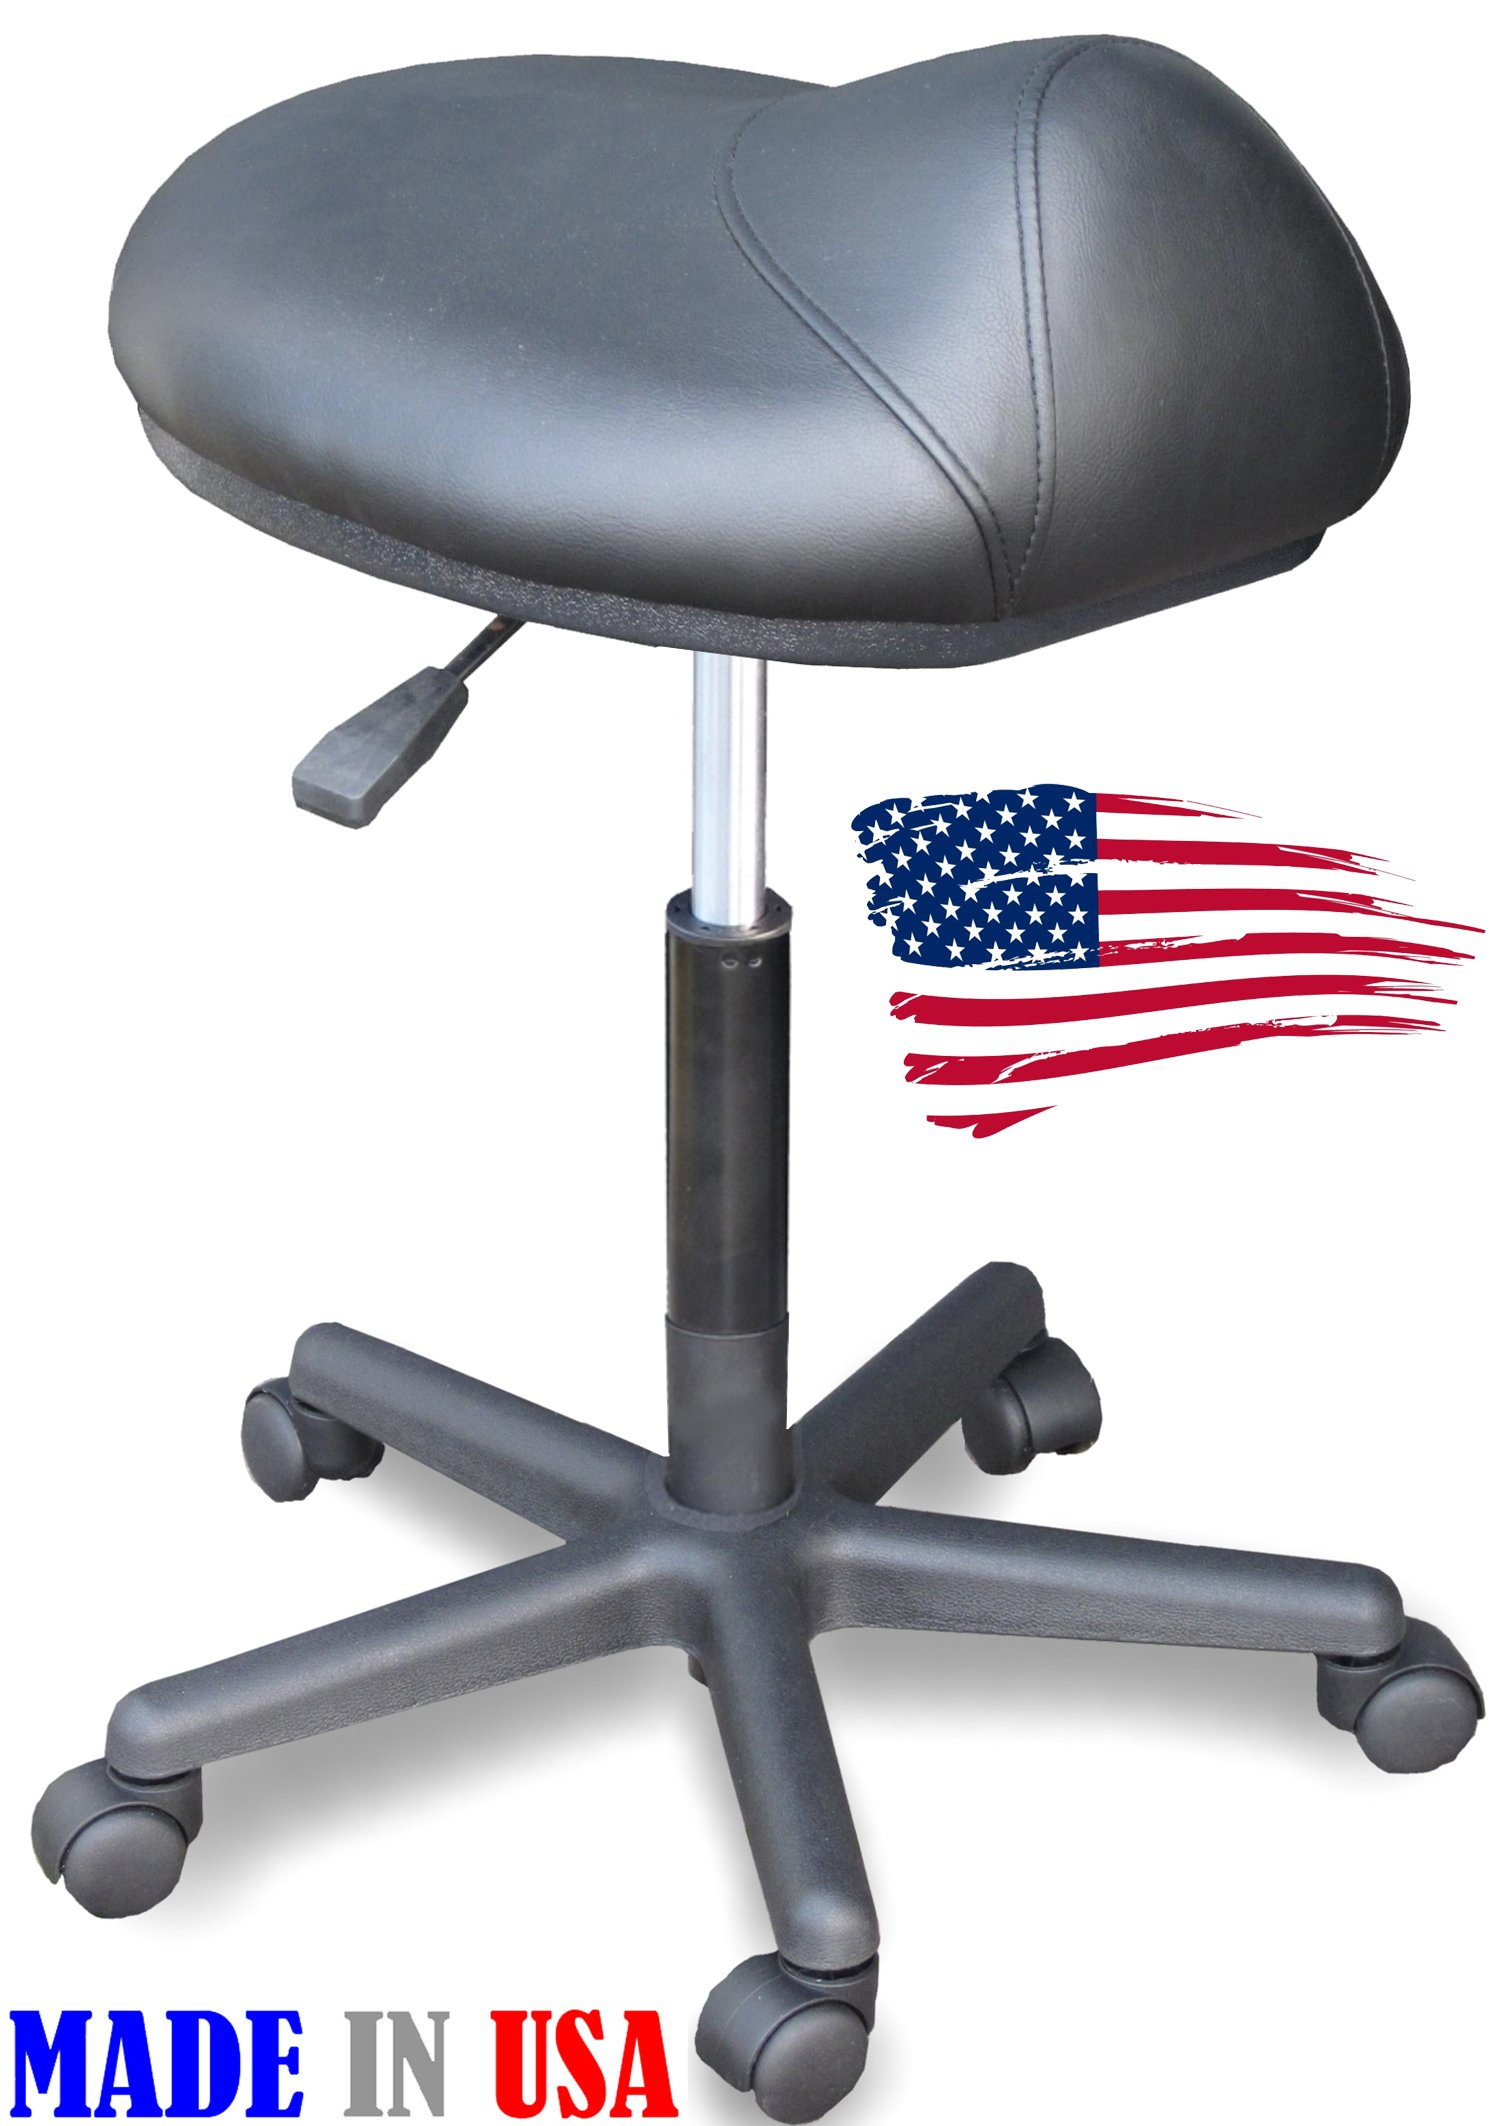 915 Salon Spa Cutting Stool Saddle Anti-fatigue chair Made in USA by Dina Meri